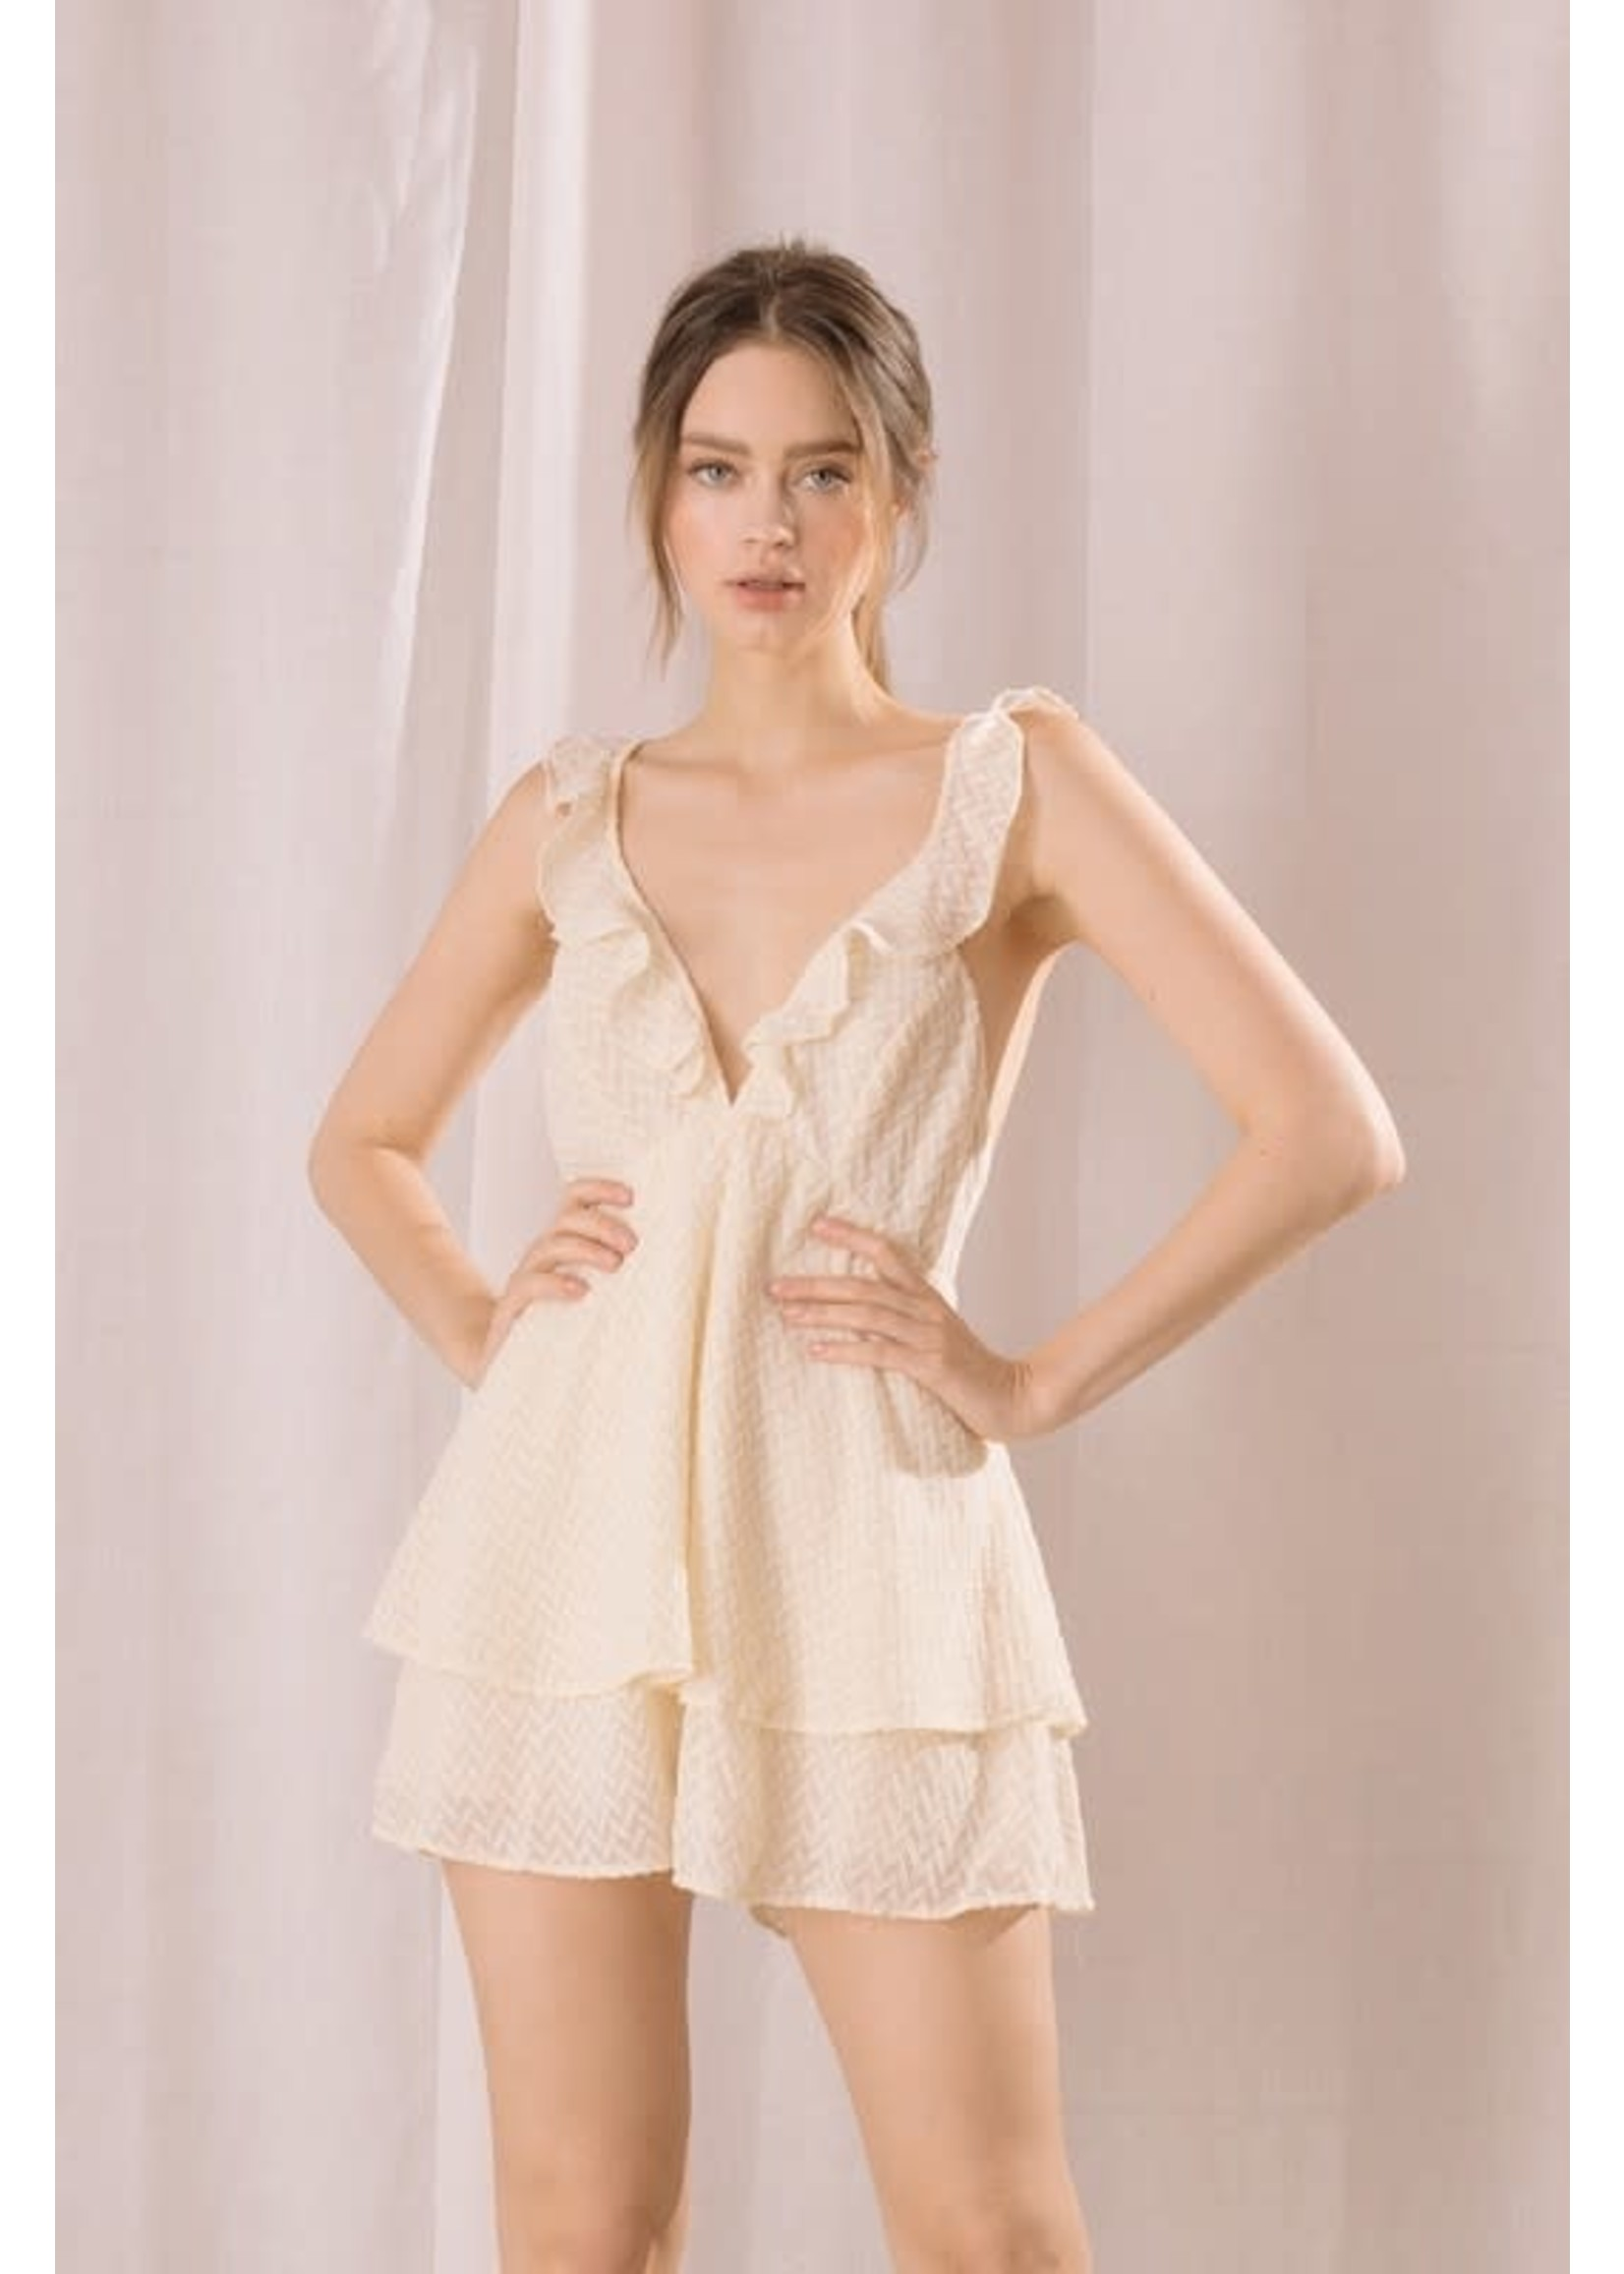 Storia Textured Embroidered Romper - BR2179